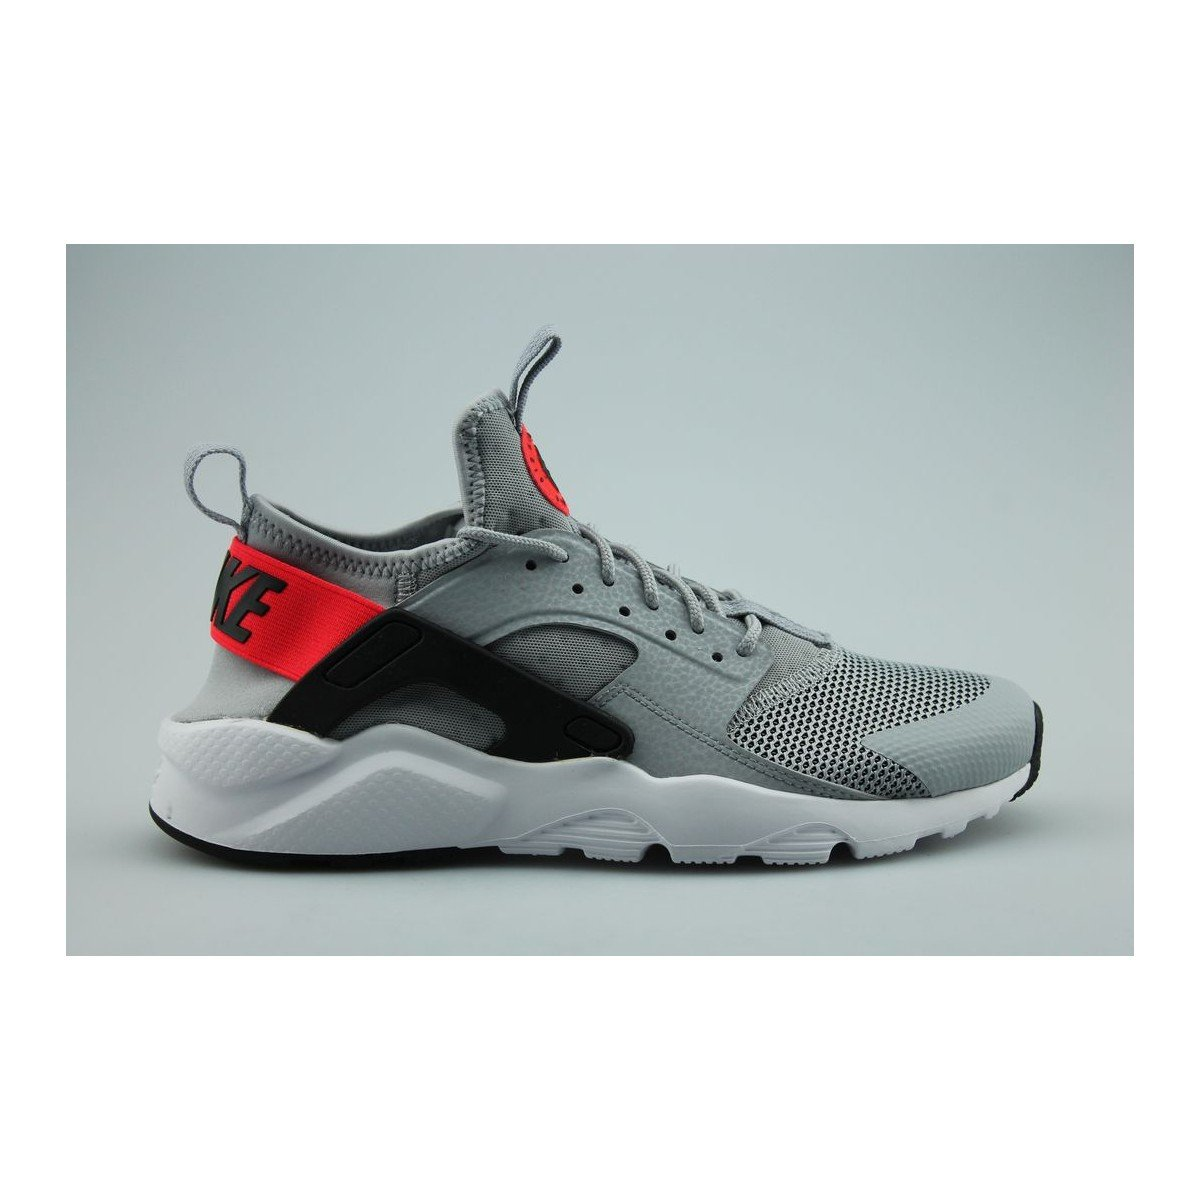 best cheap 9abce 4a456 ... black cool grey 35.5 40 1218d debc8  new zealand nike air huarache run  ultra white bright gs zapatillas de 15385 para running para